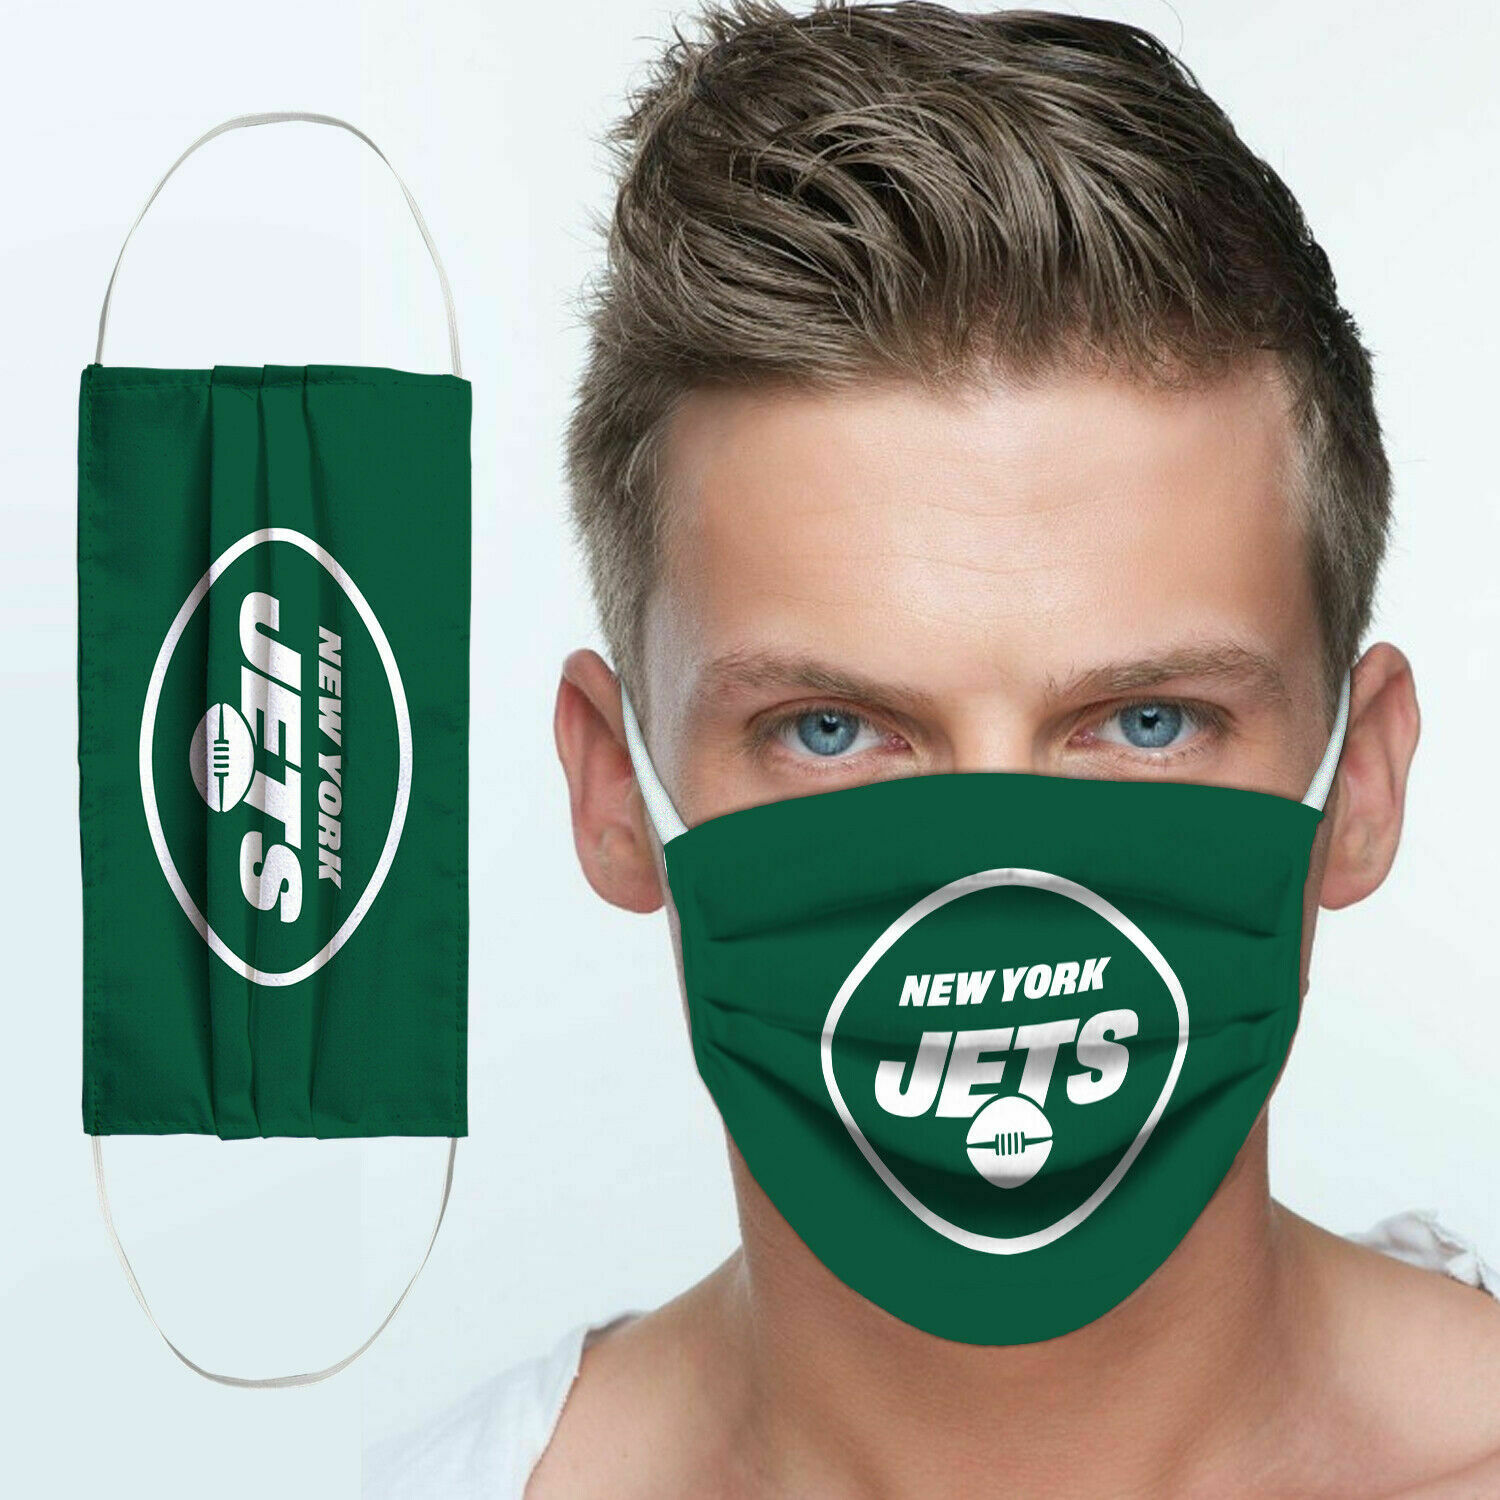 National football league new york jets team cotton face mask 4